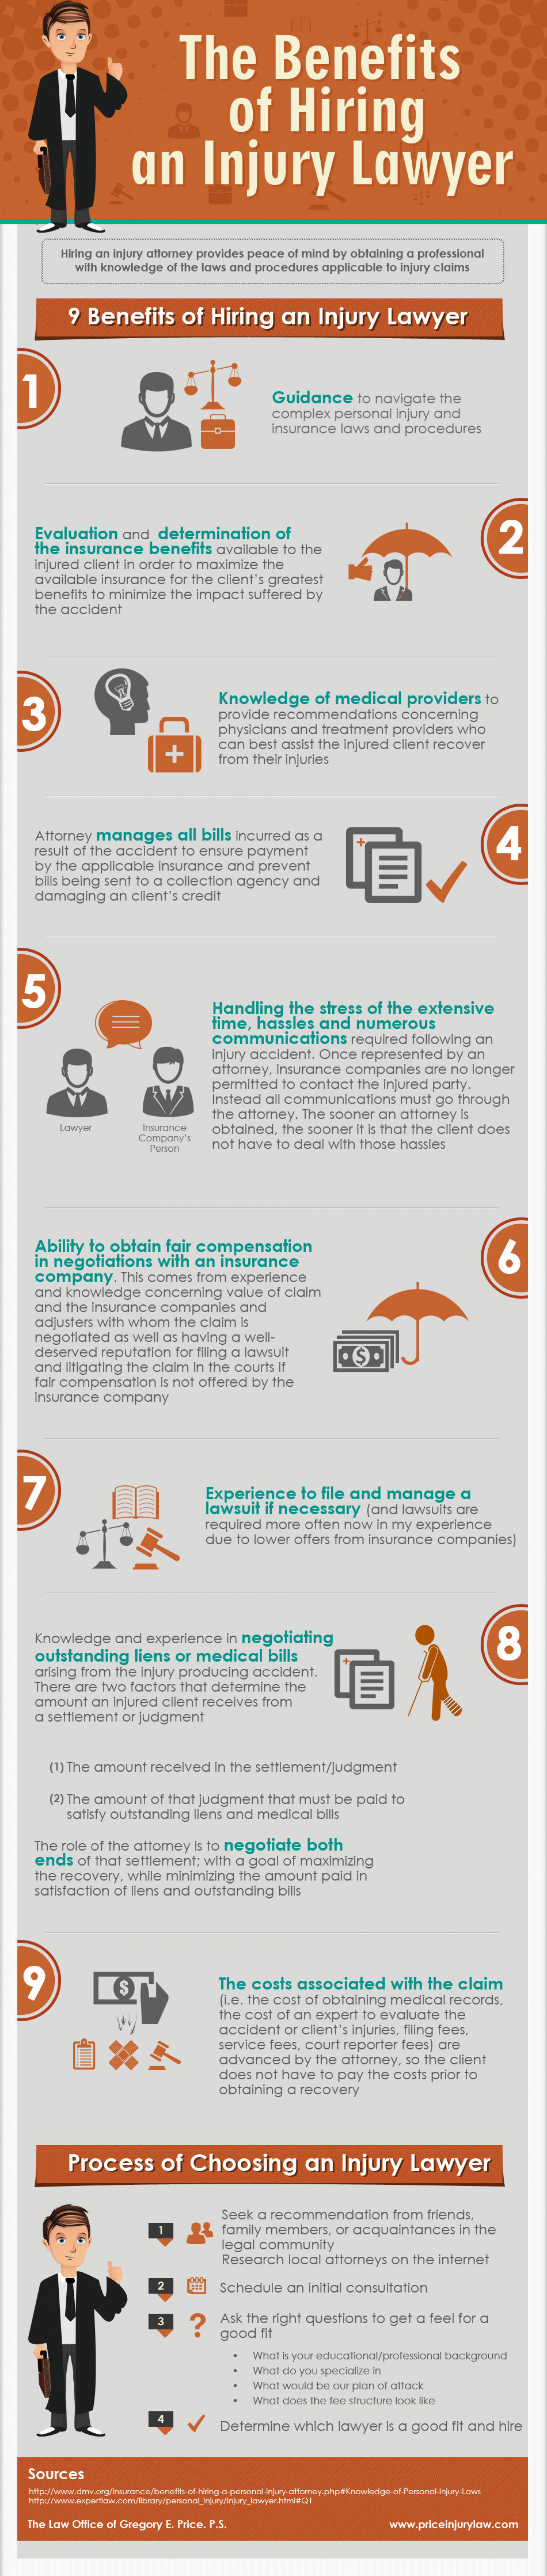 The Benefits of Hiring an Injury Lawyer  Infographic